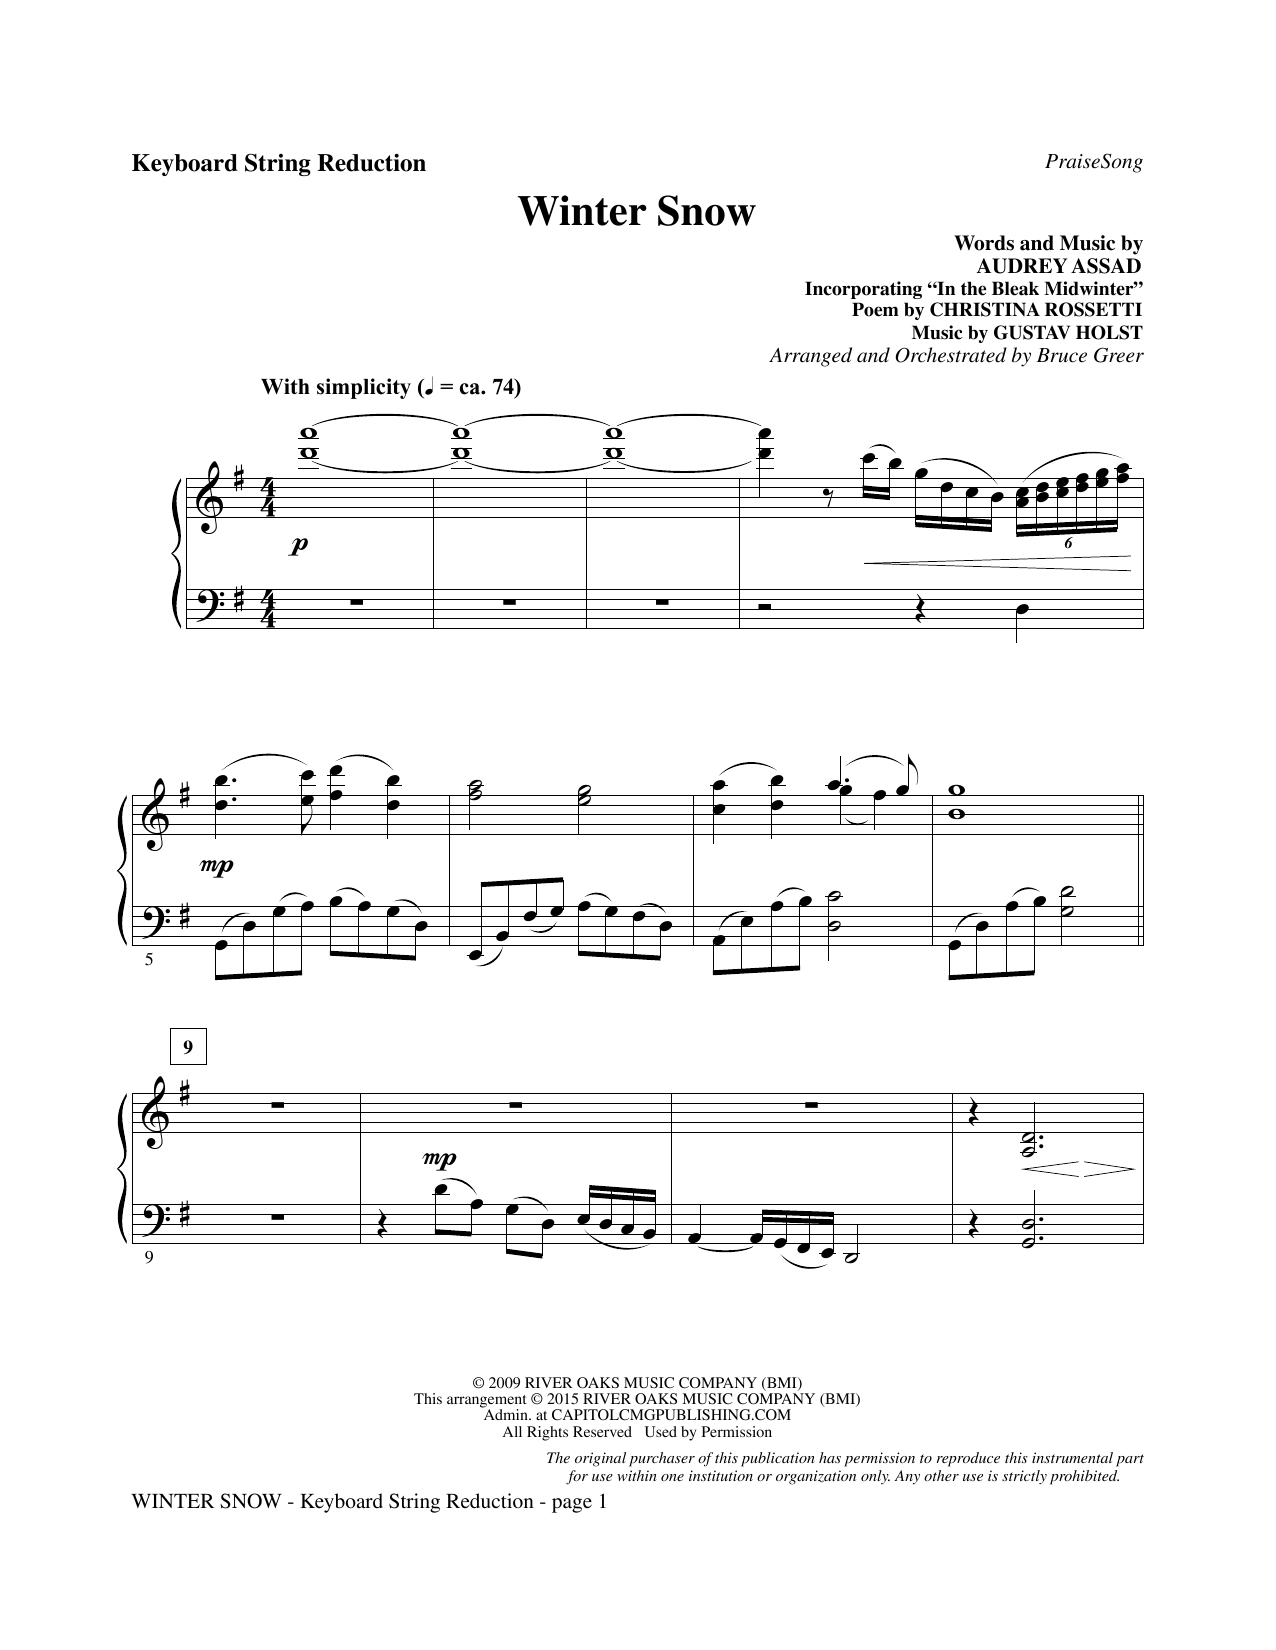 Winter Snow - Keyboard String Reduction Sheet Music